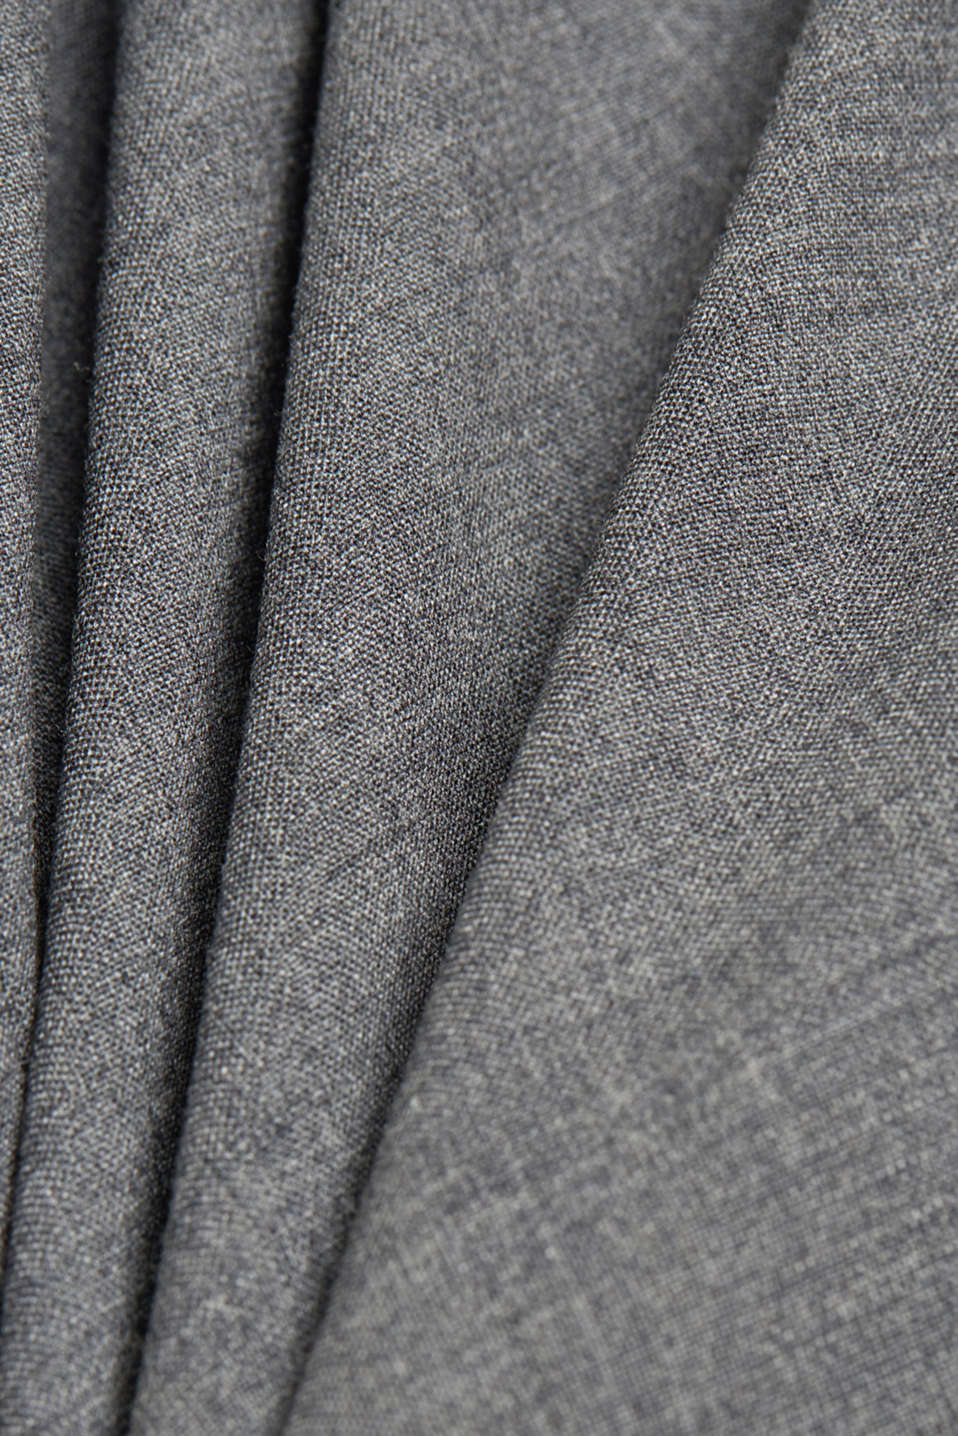 ACTIVE SUIT tailored jacket, wool blend, DARK GREY 5, detail image number 5